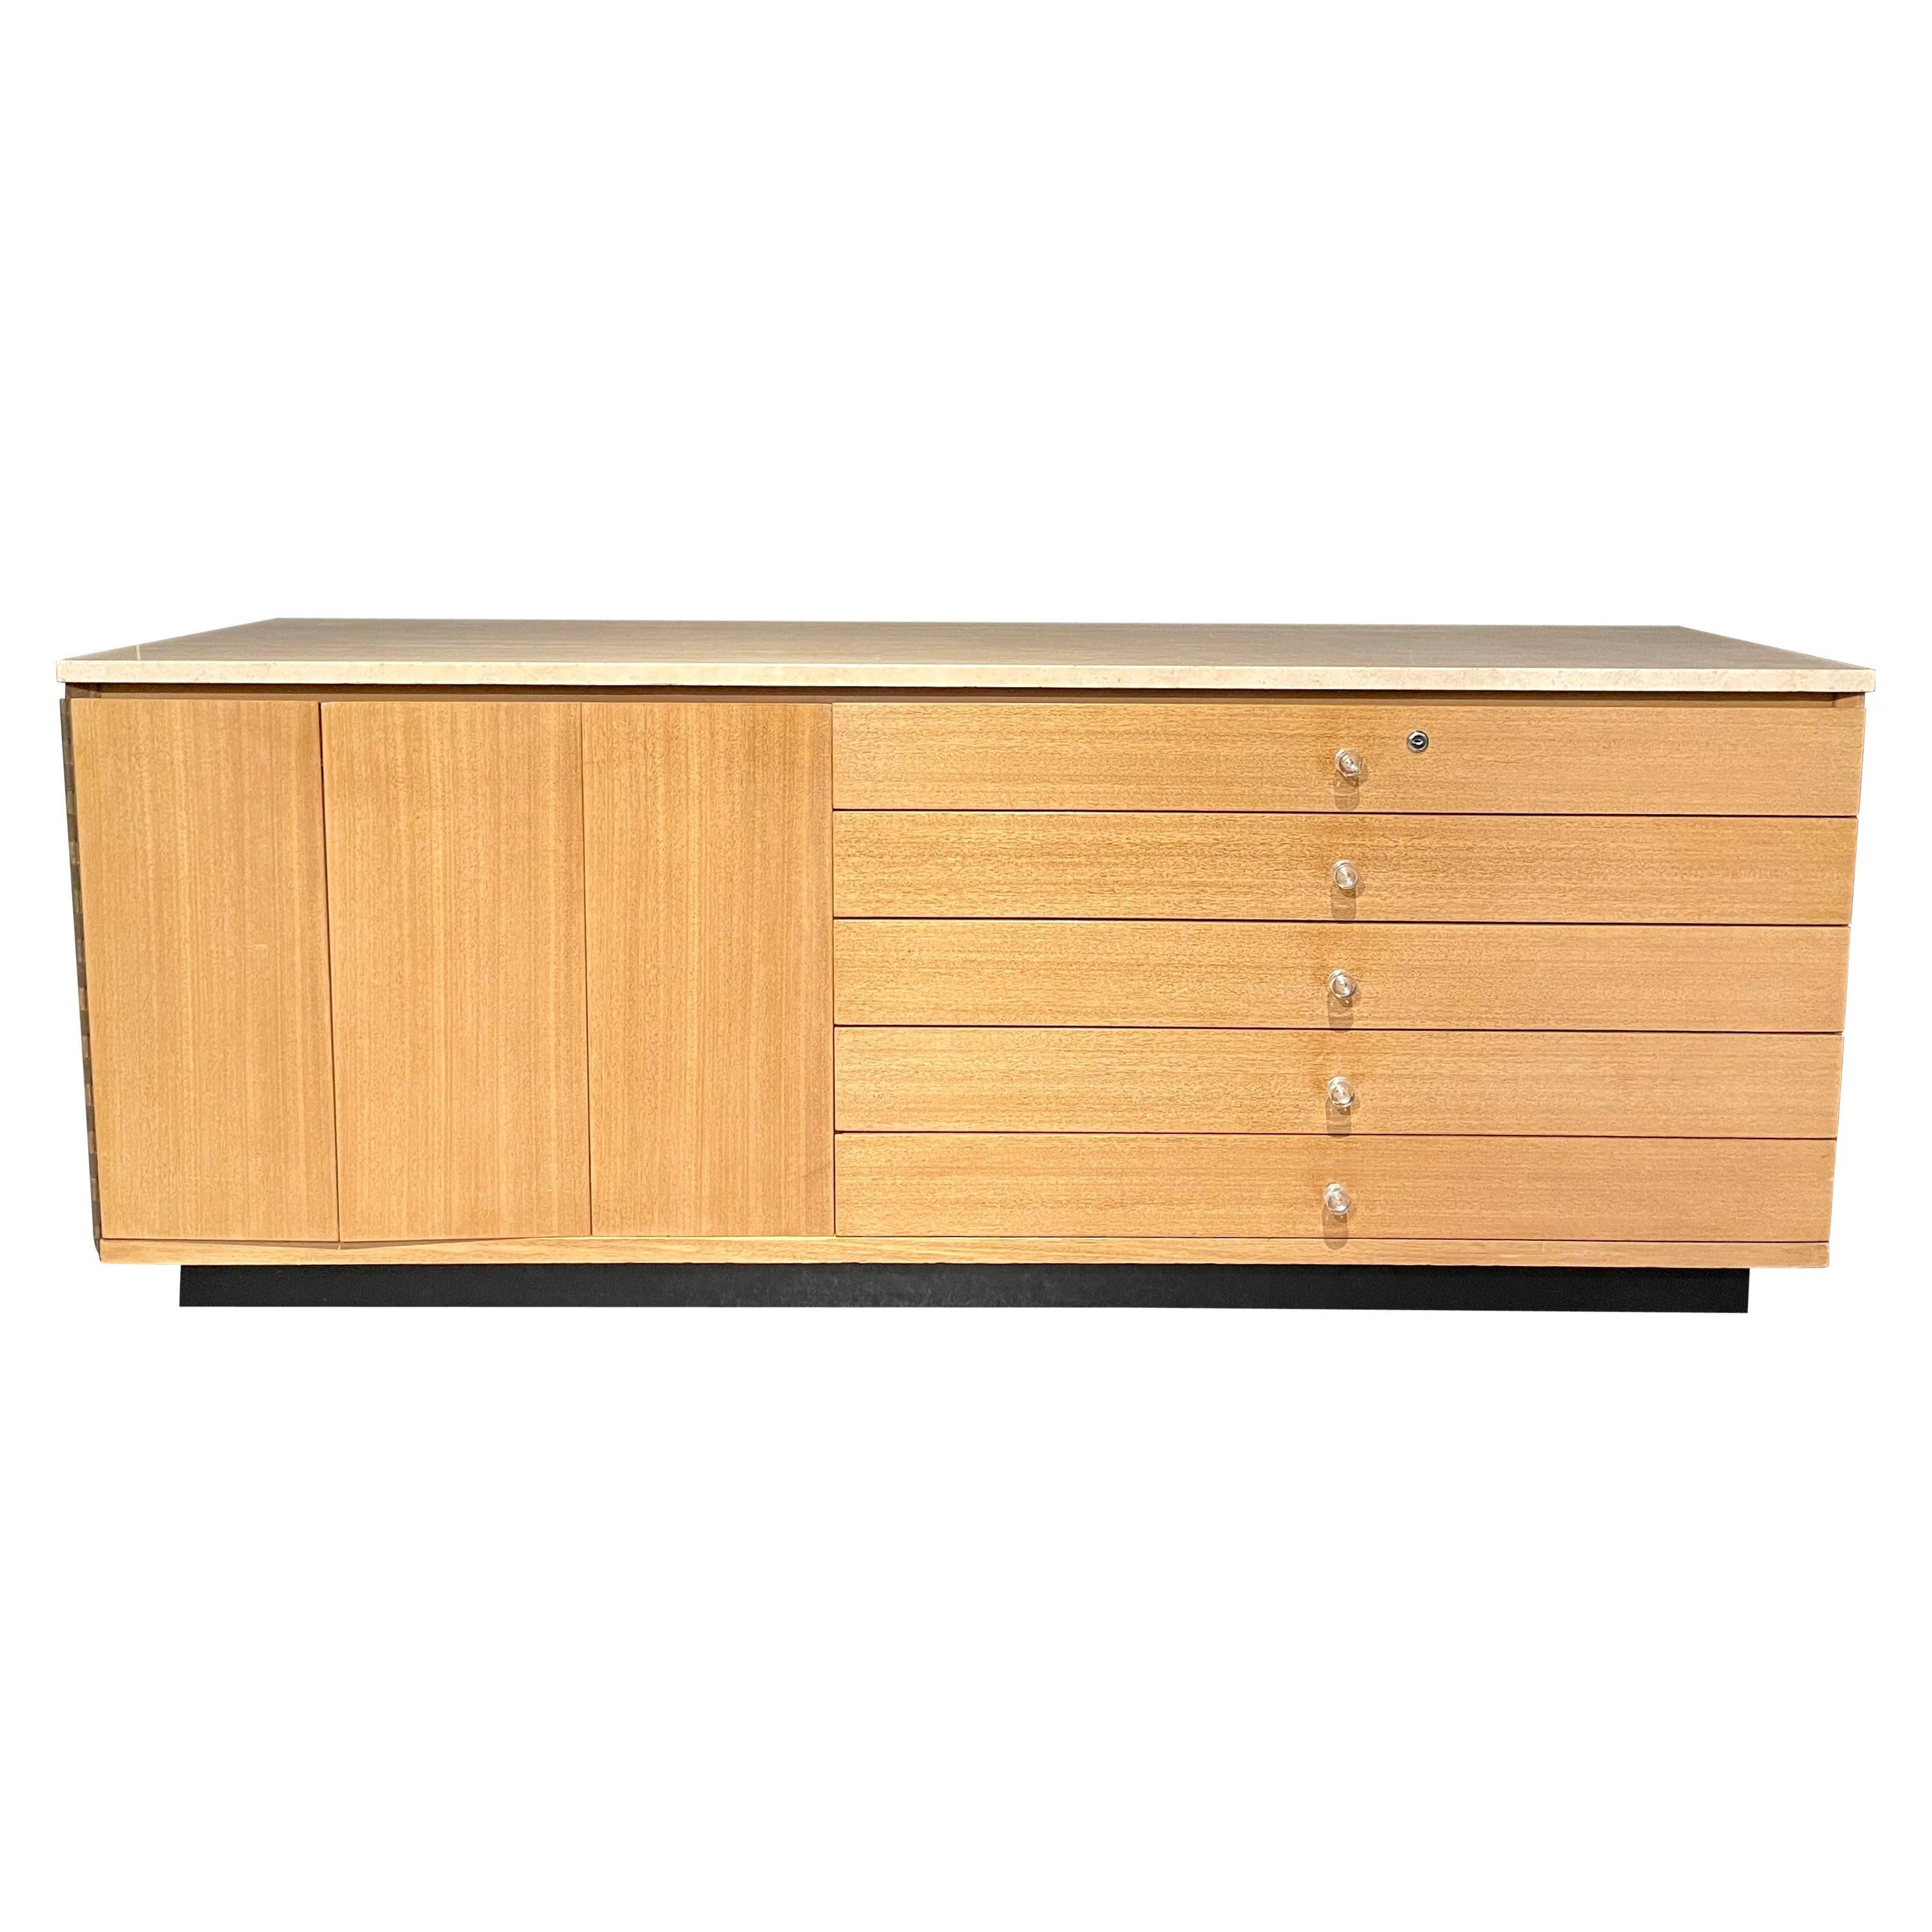 Mid-Century Modern Sideboard by Paul McCobb Credenza, Irwin Collection